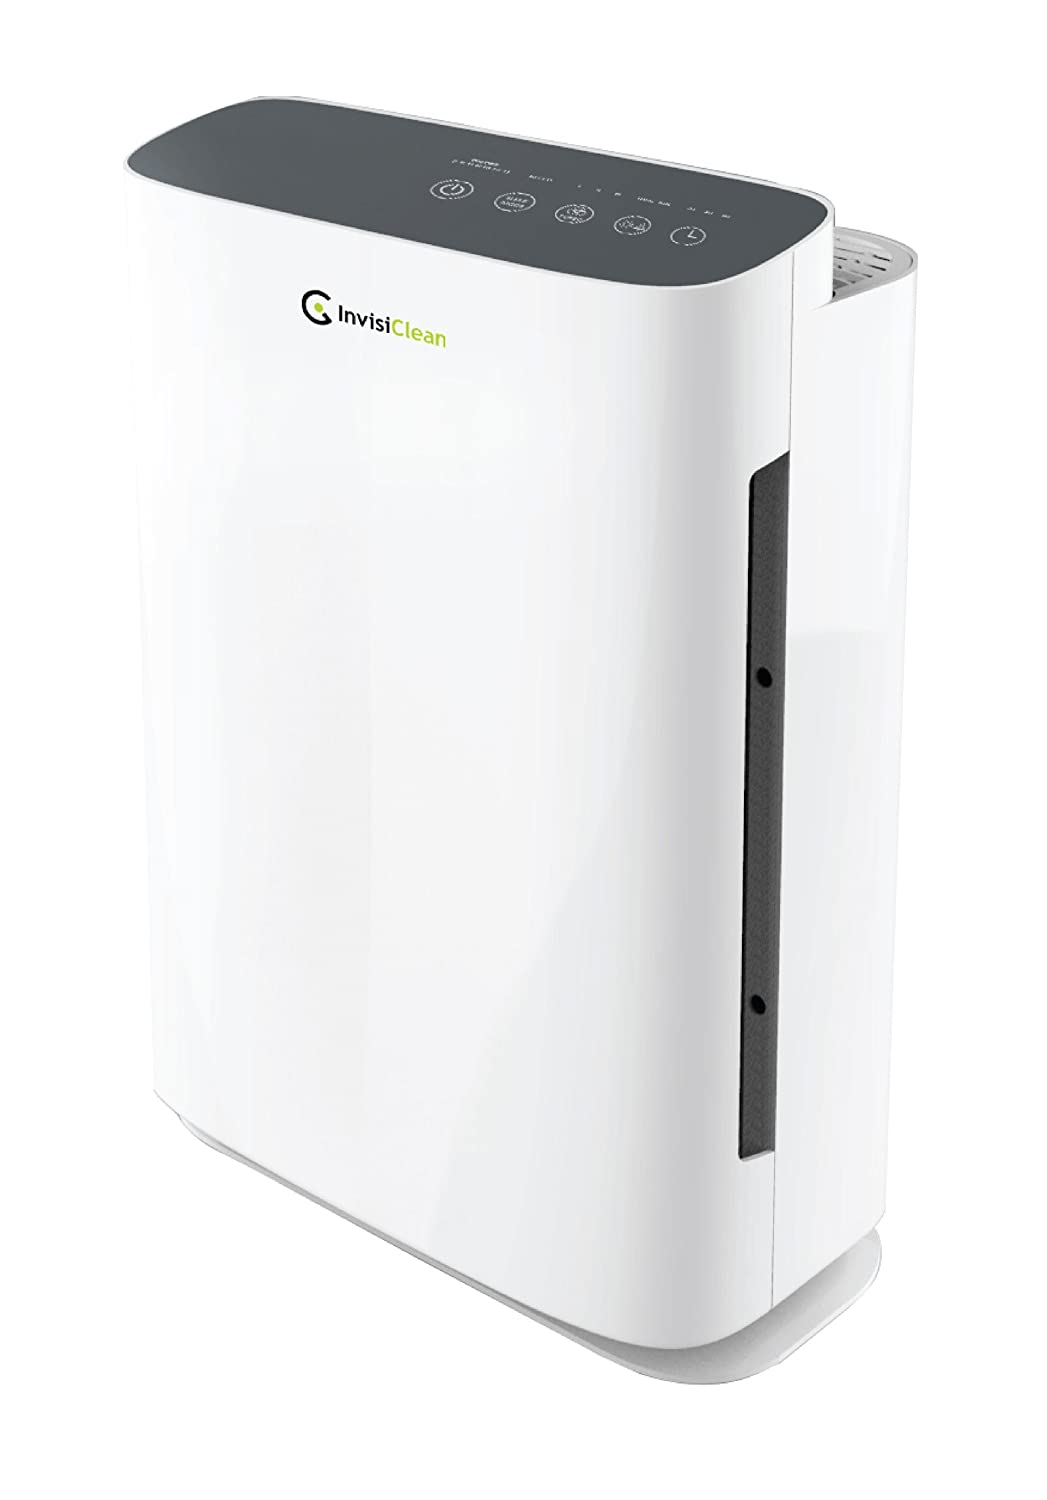 InvisiClean Aura Air Purifier - 4-in-1 Air Purifying System